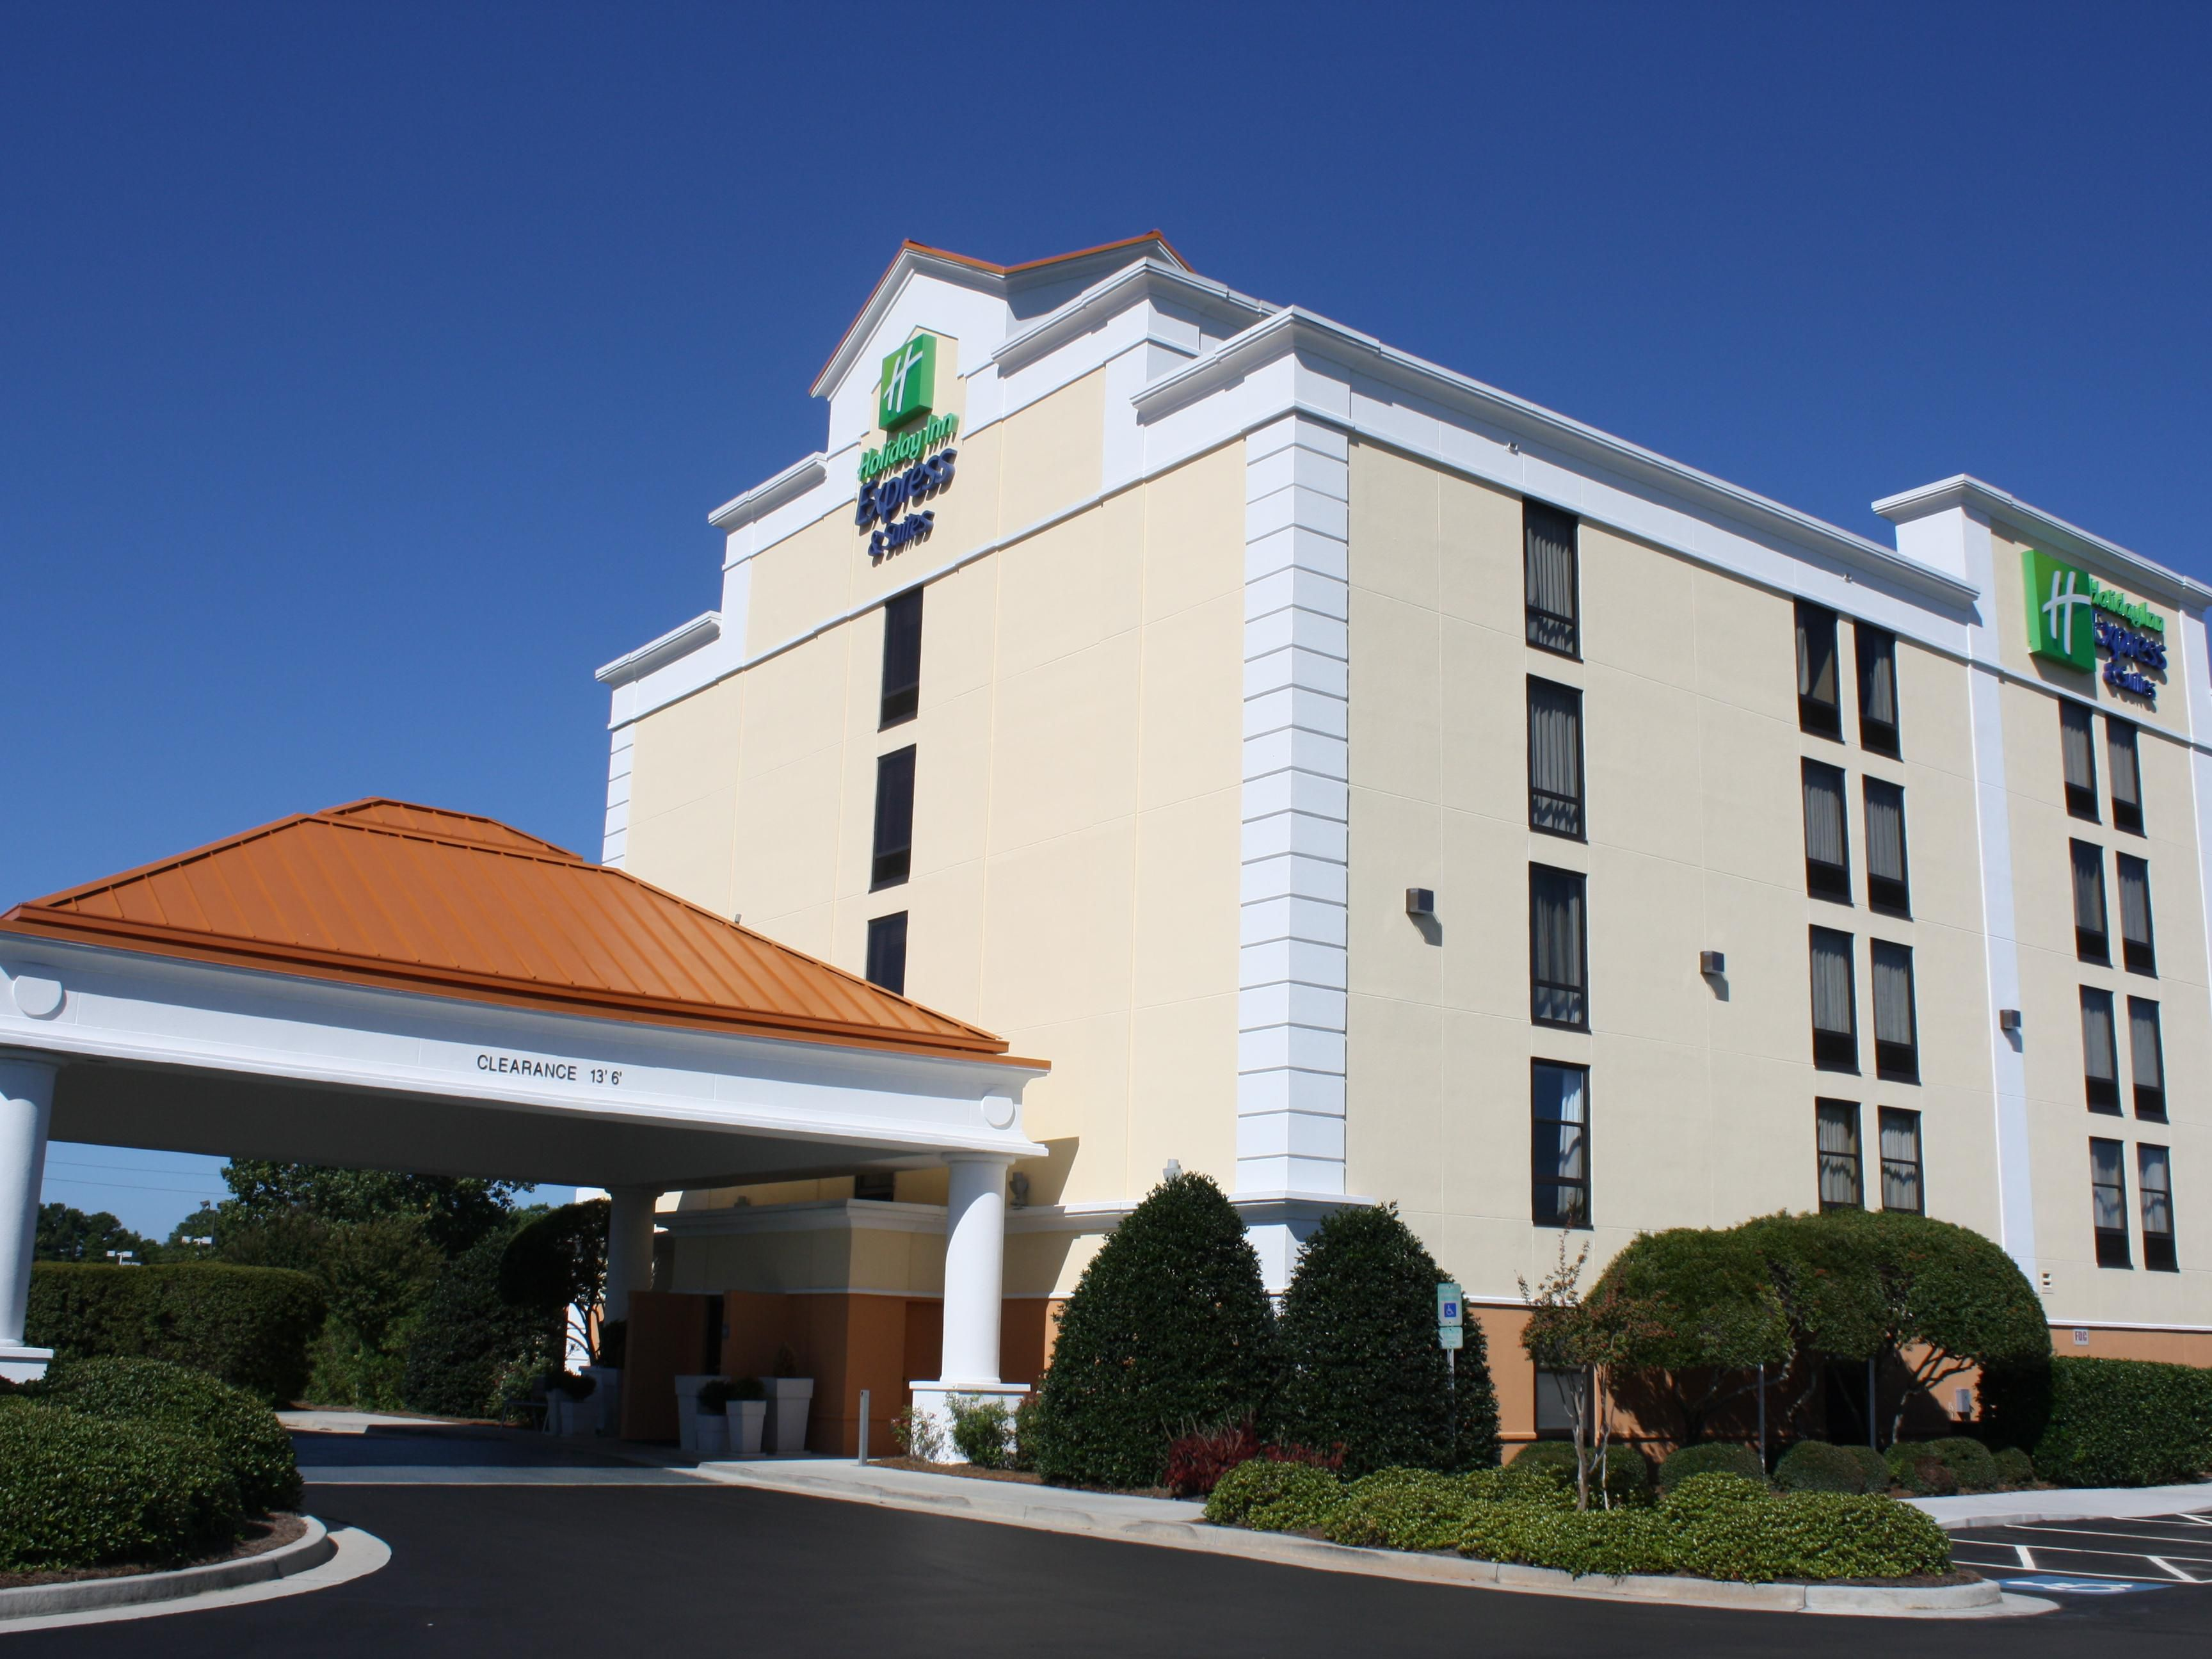 Welcome to the Holiday Inn Express & Suites!